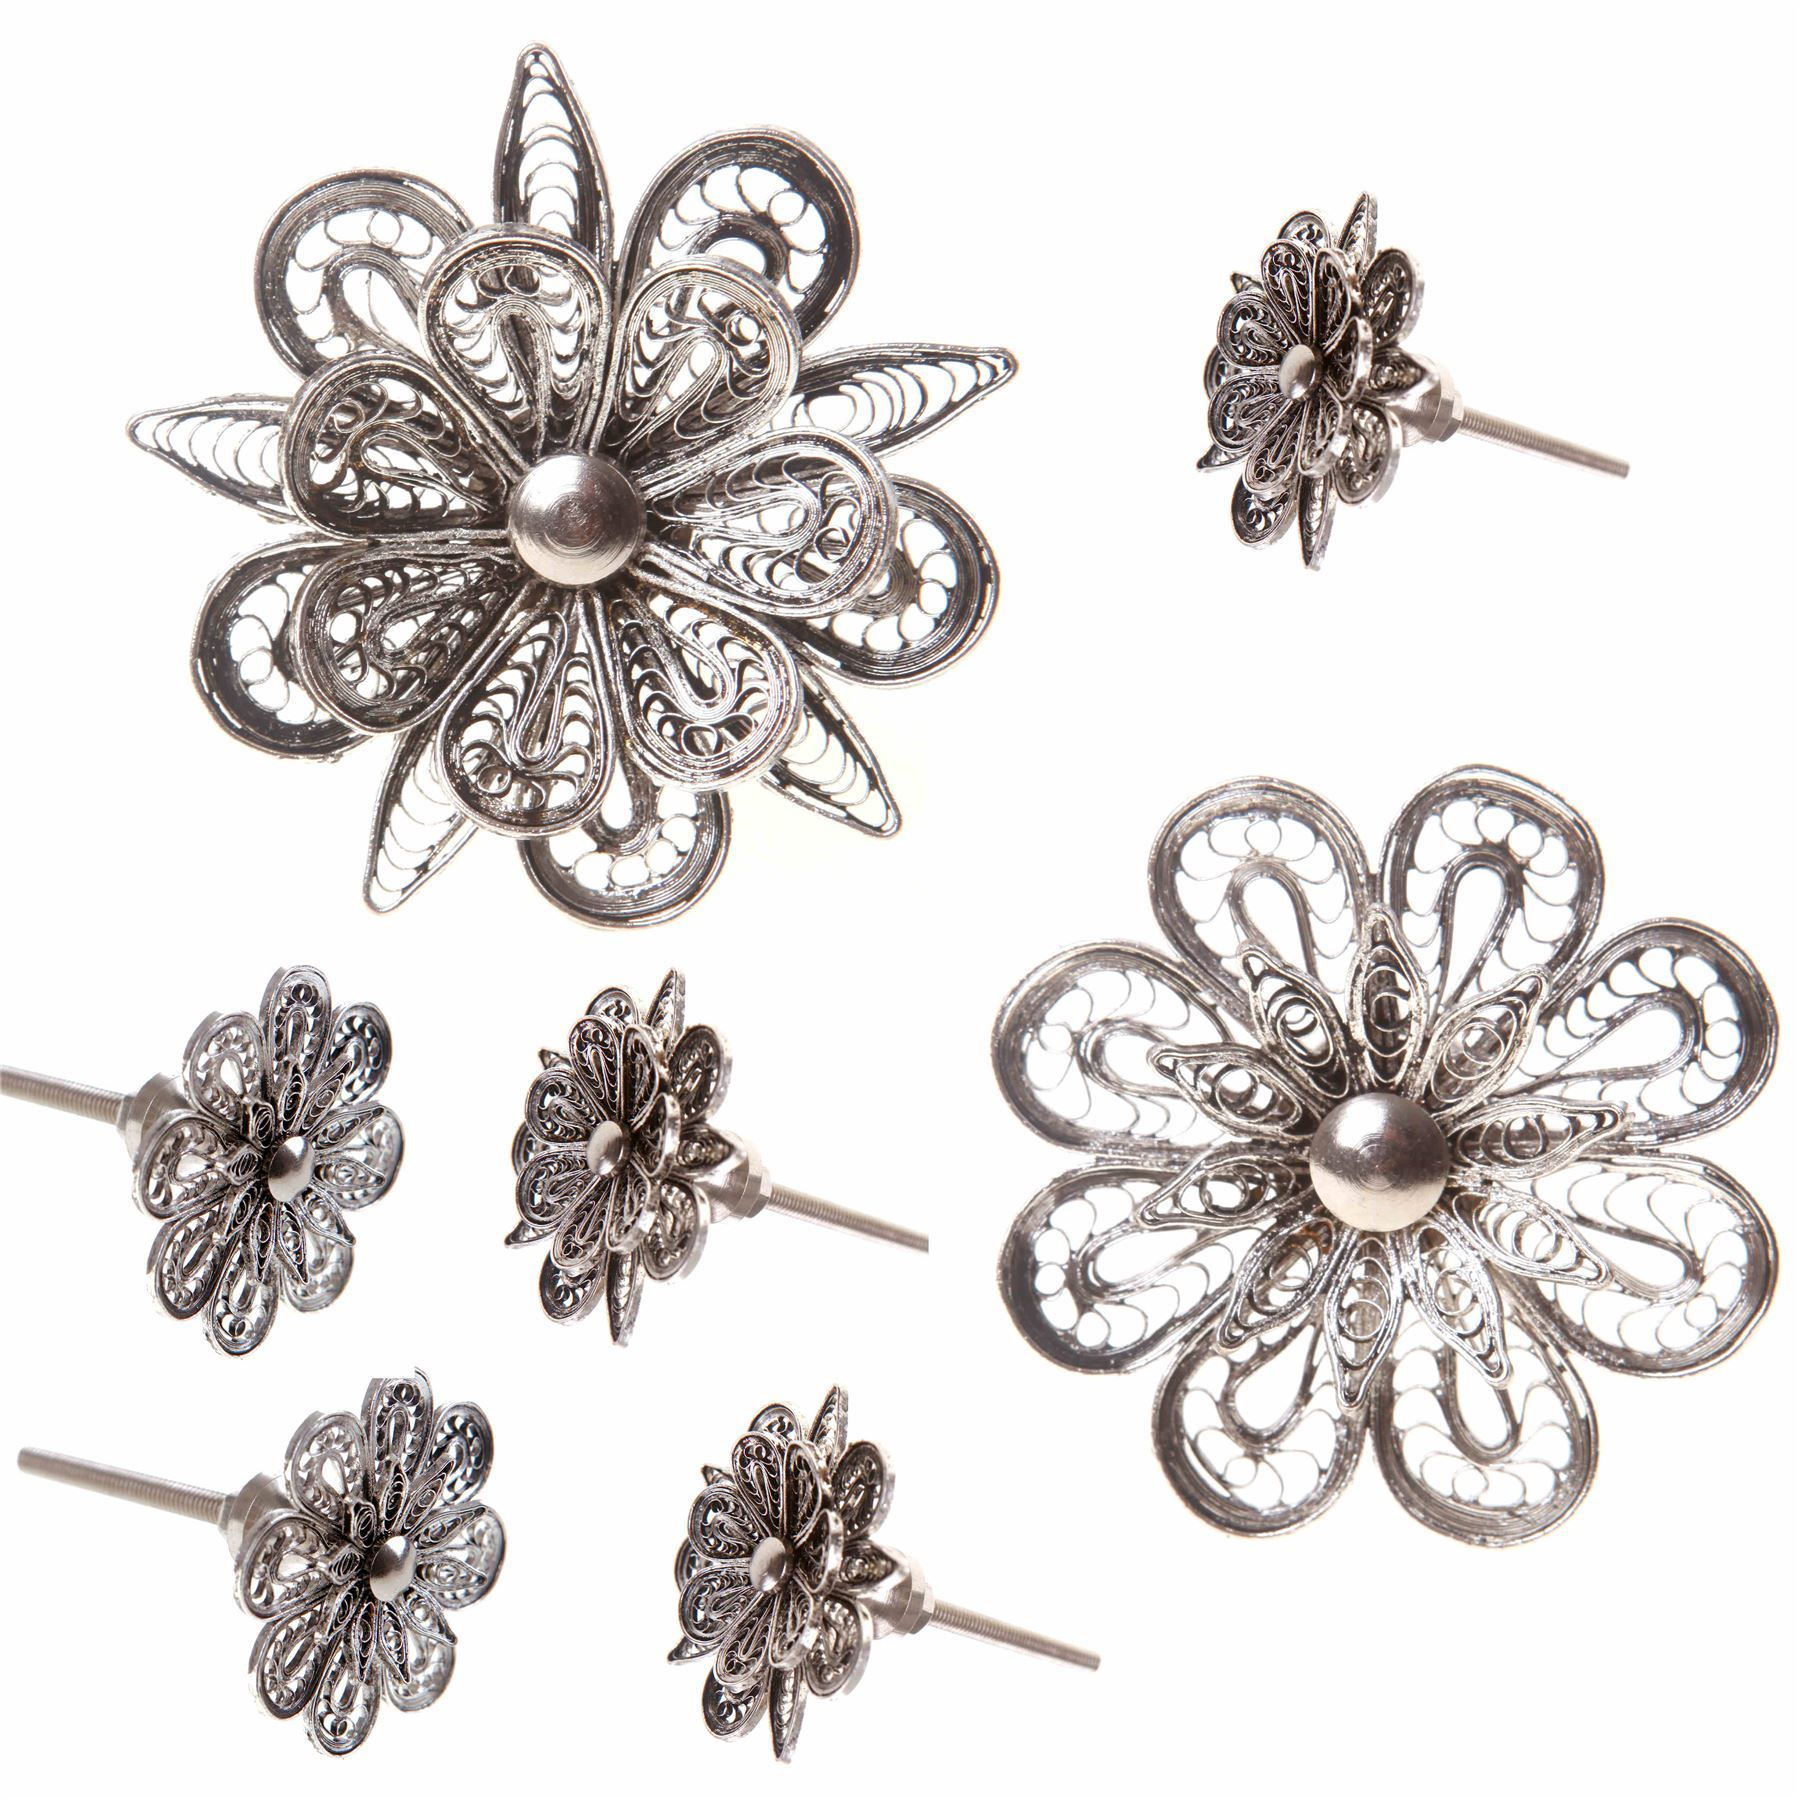 VINTAGE DOOR KNOBS ORNATE SILVER FLOWER SHAPED METAL DRAWER PULLS ...